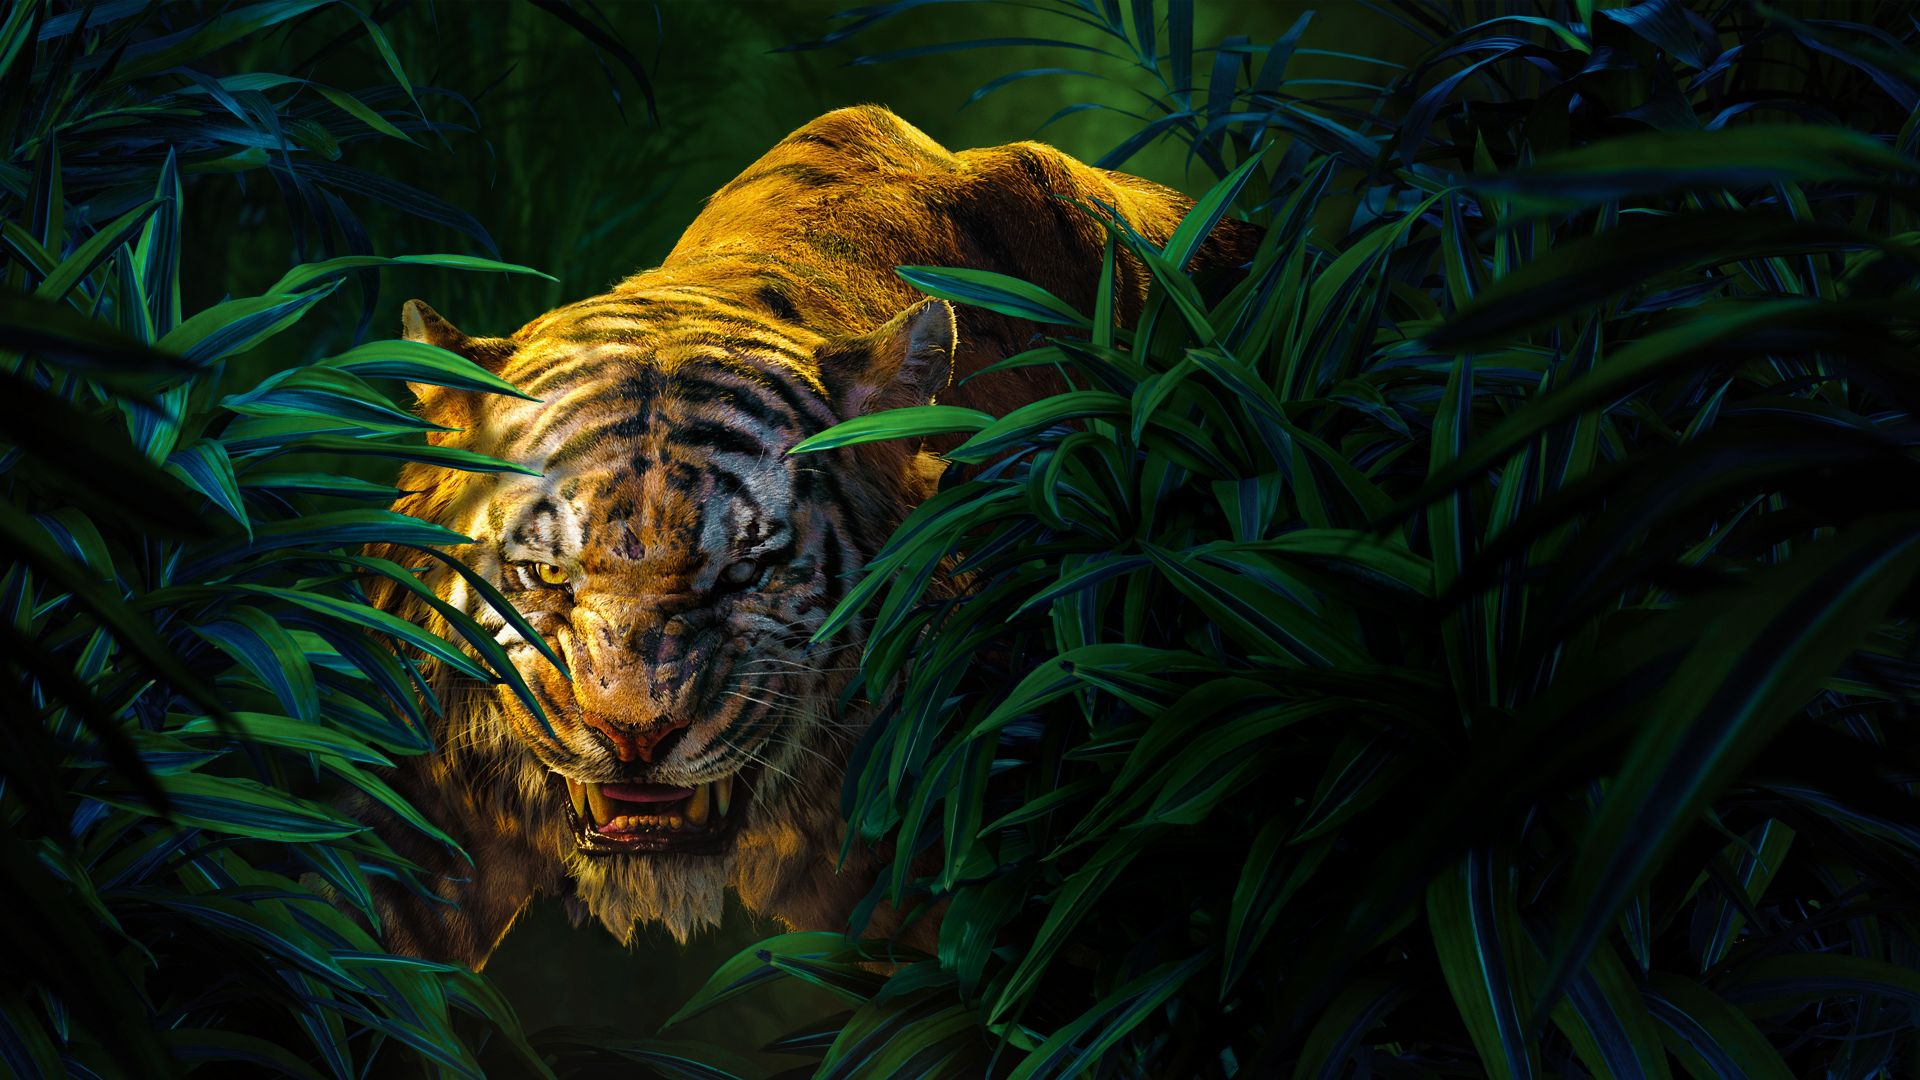 Wallpaper The Jungle Book Shere Khan Best Movies Of 2016 Movies